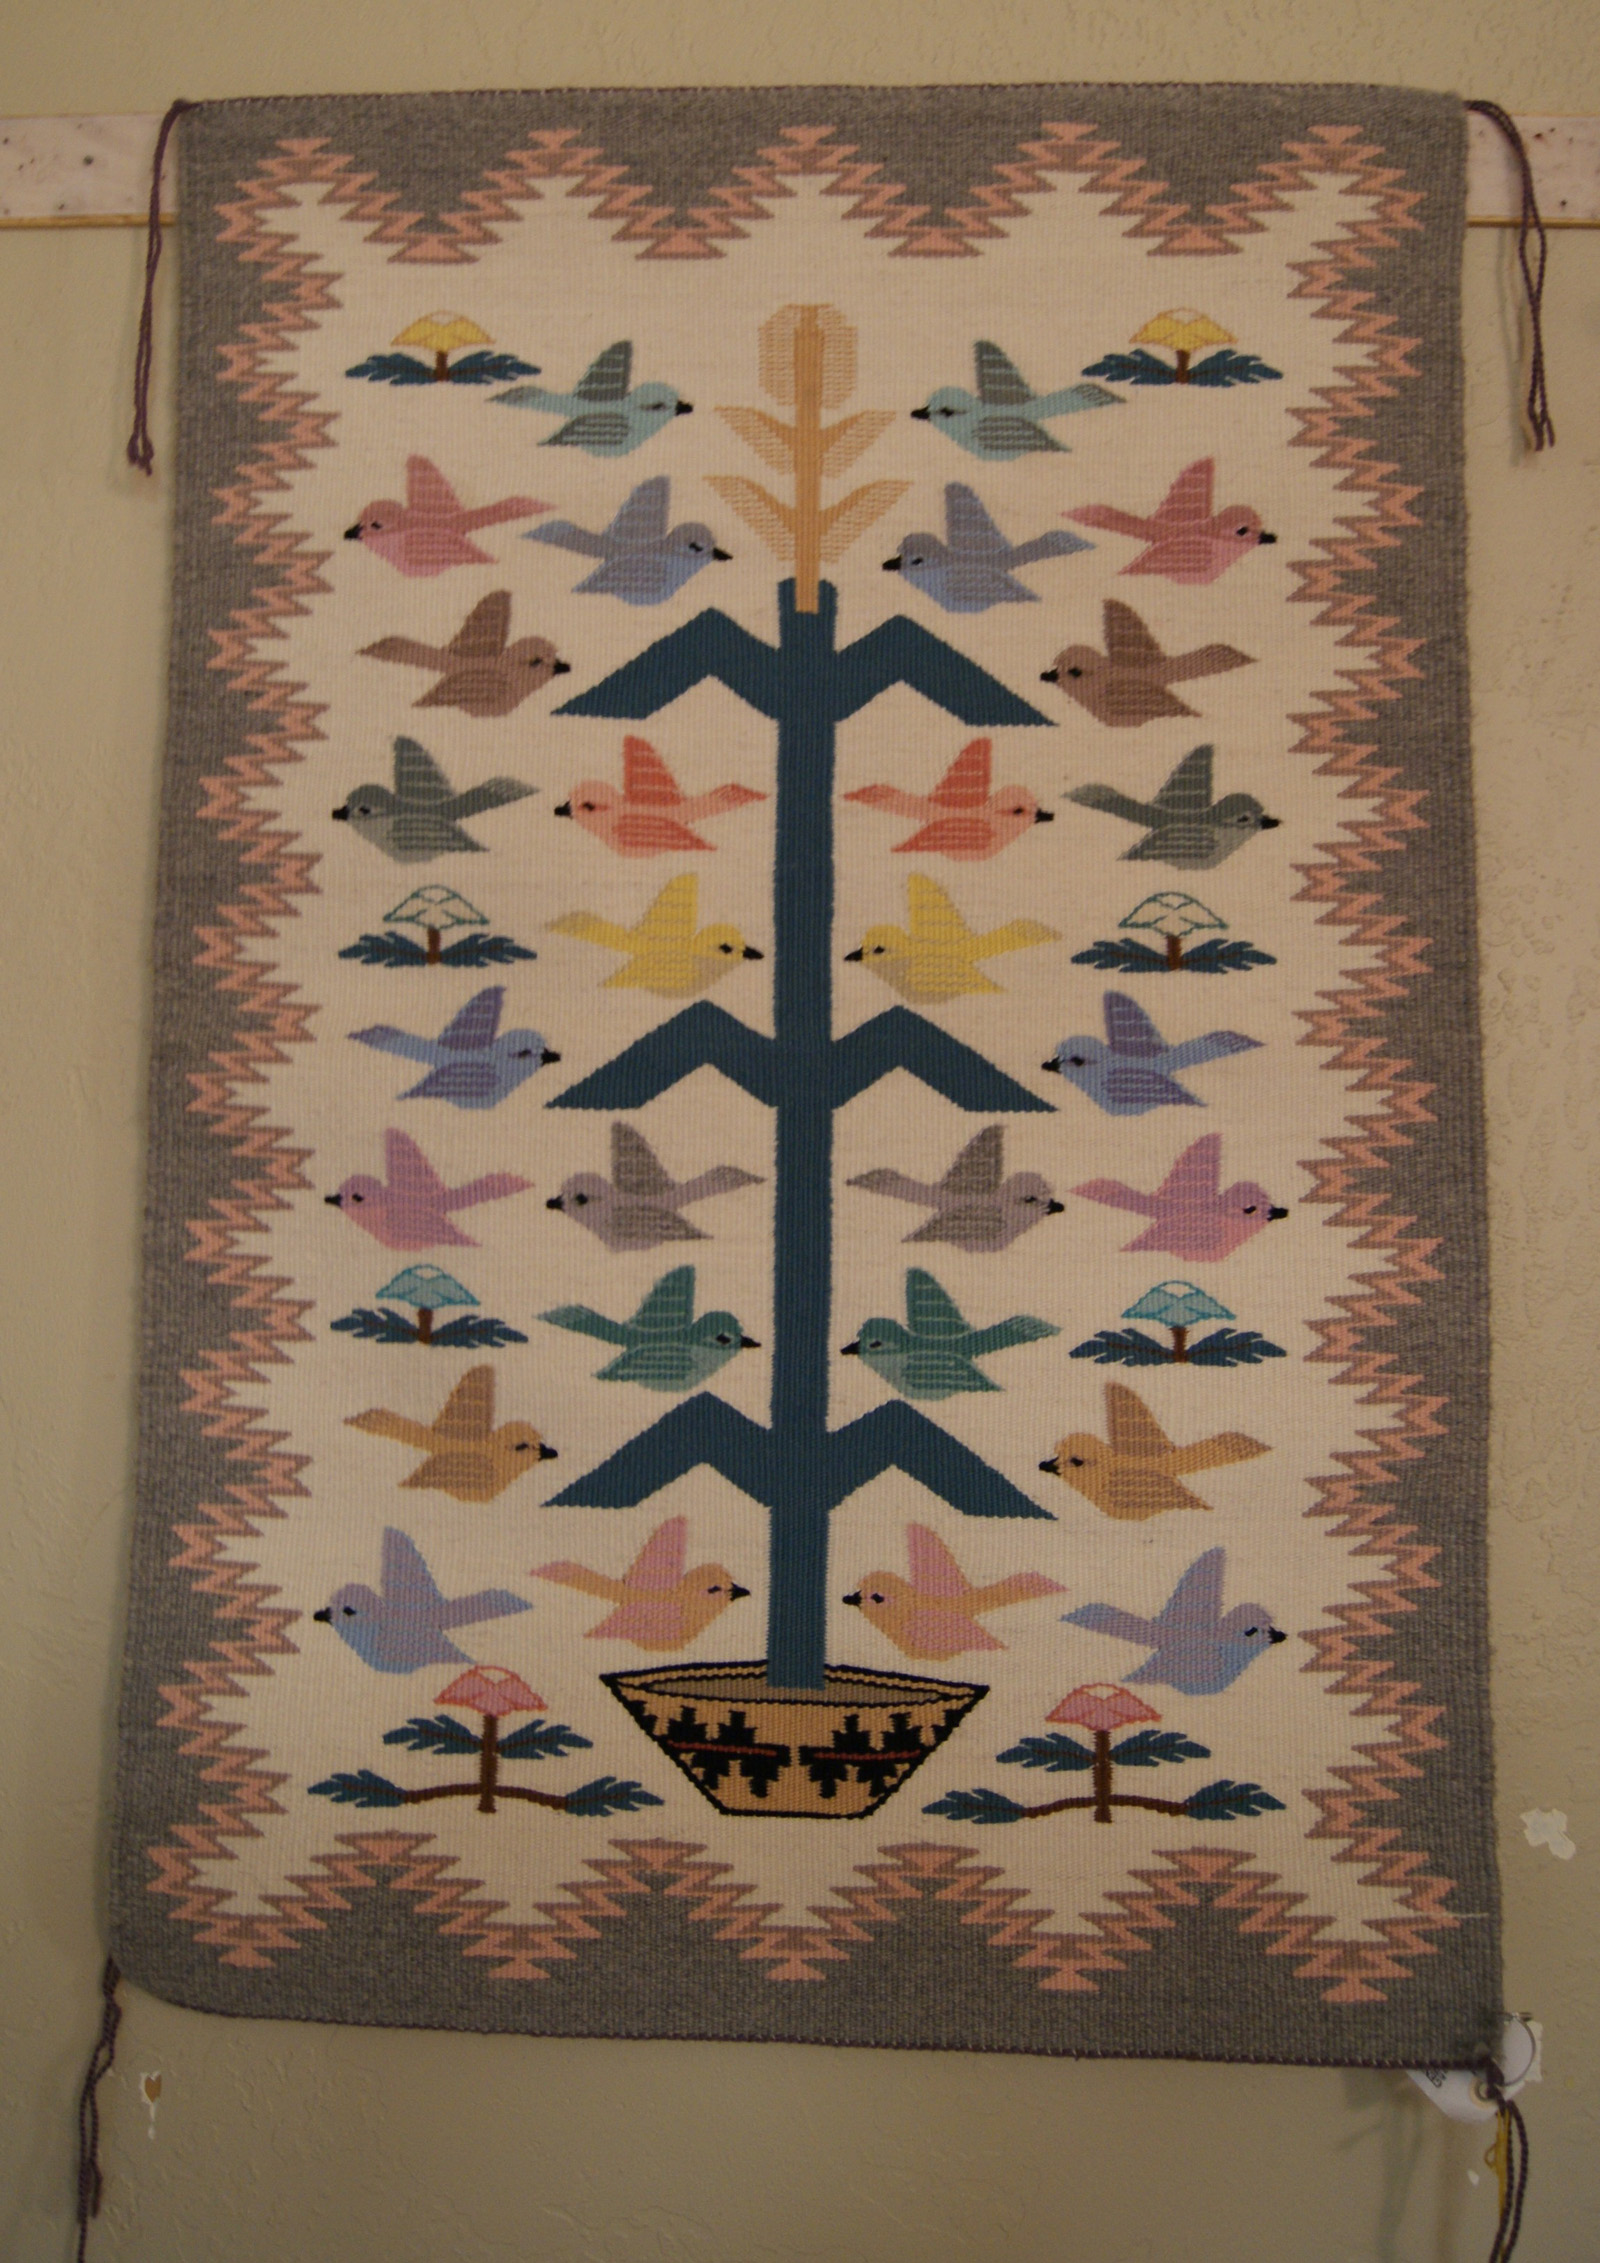 Tree Of Life Navajo Weaving With 28 Birds